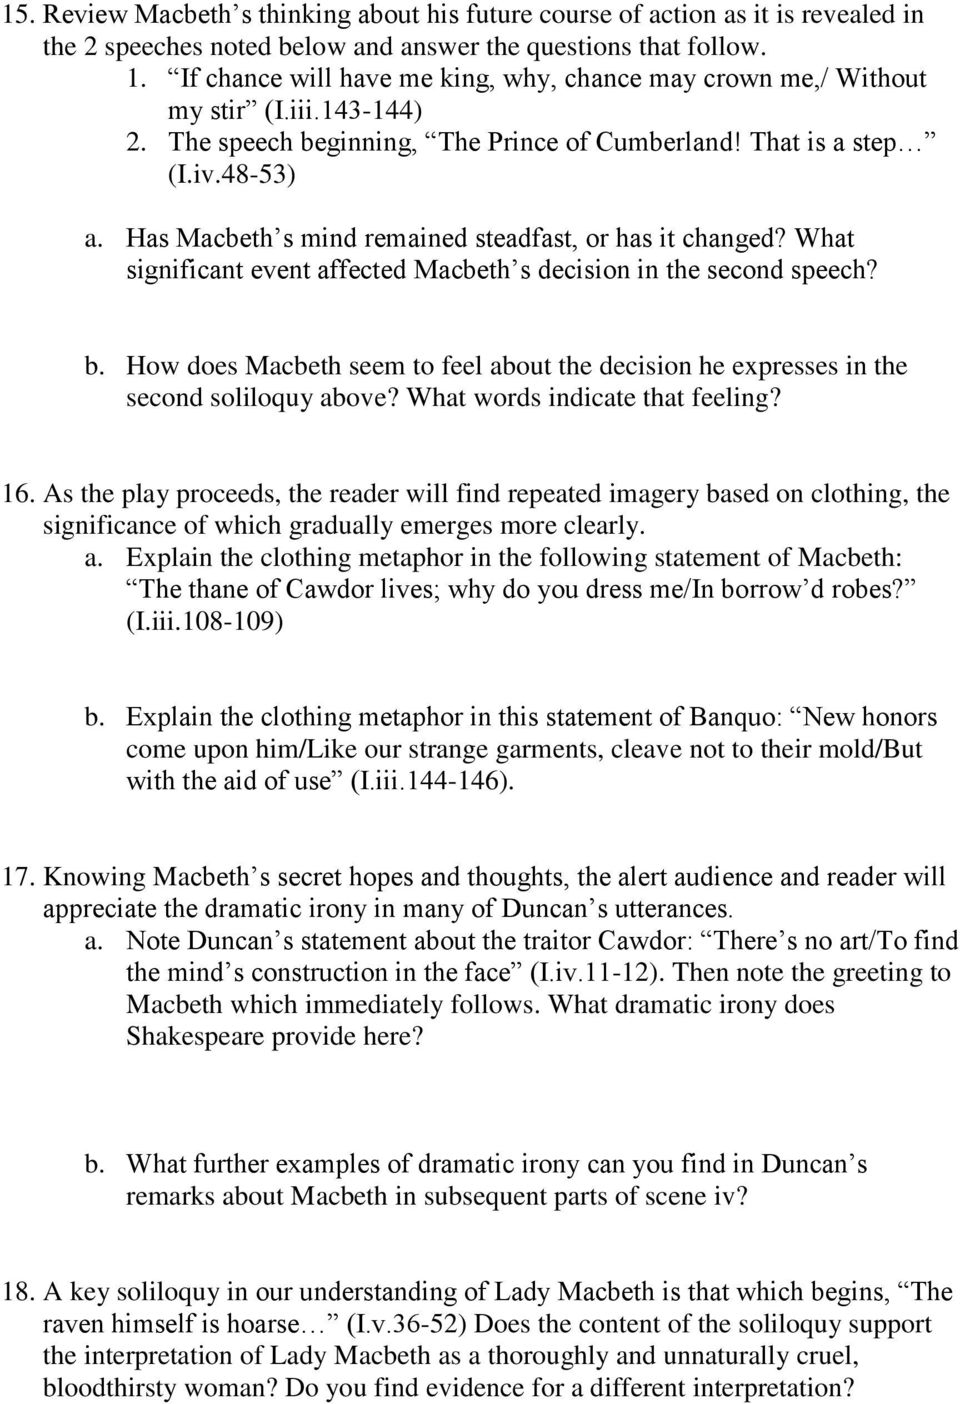 macbeth essay on ambition macbeth courage essay essay macbeth  macbeth study guide questions pdf has macbeth s mind remained steadfast or has it changed what